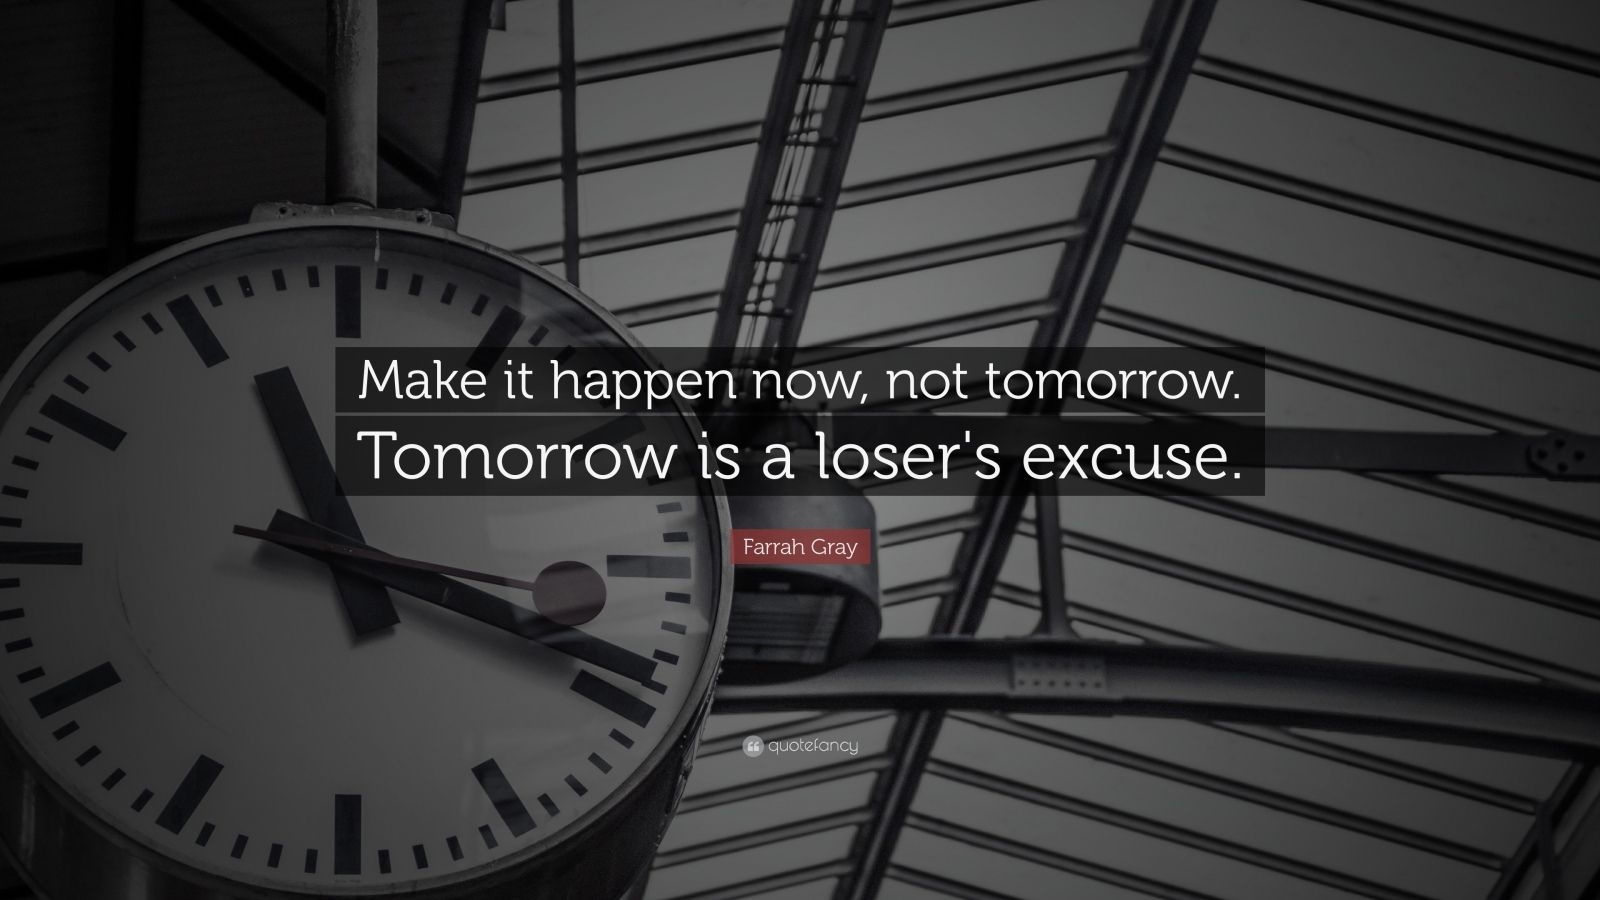 Inspirational Entrepreneurship Quotes: U201cMake It Happen Now, Not Tomorrow.  Tomorrow Is A